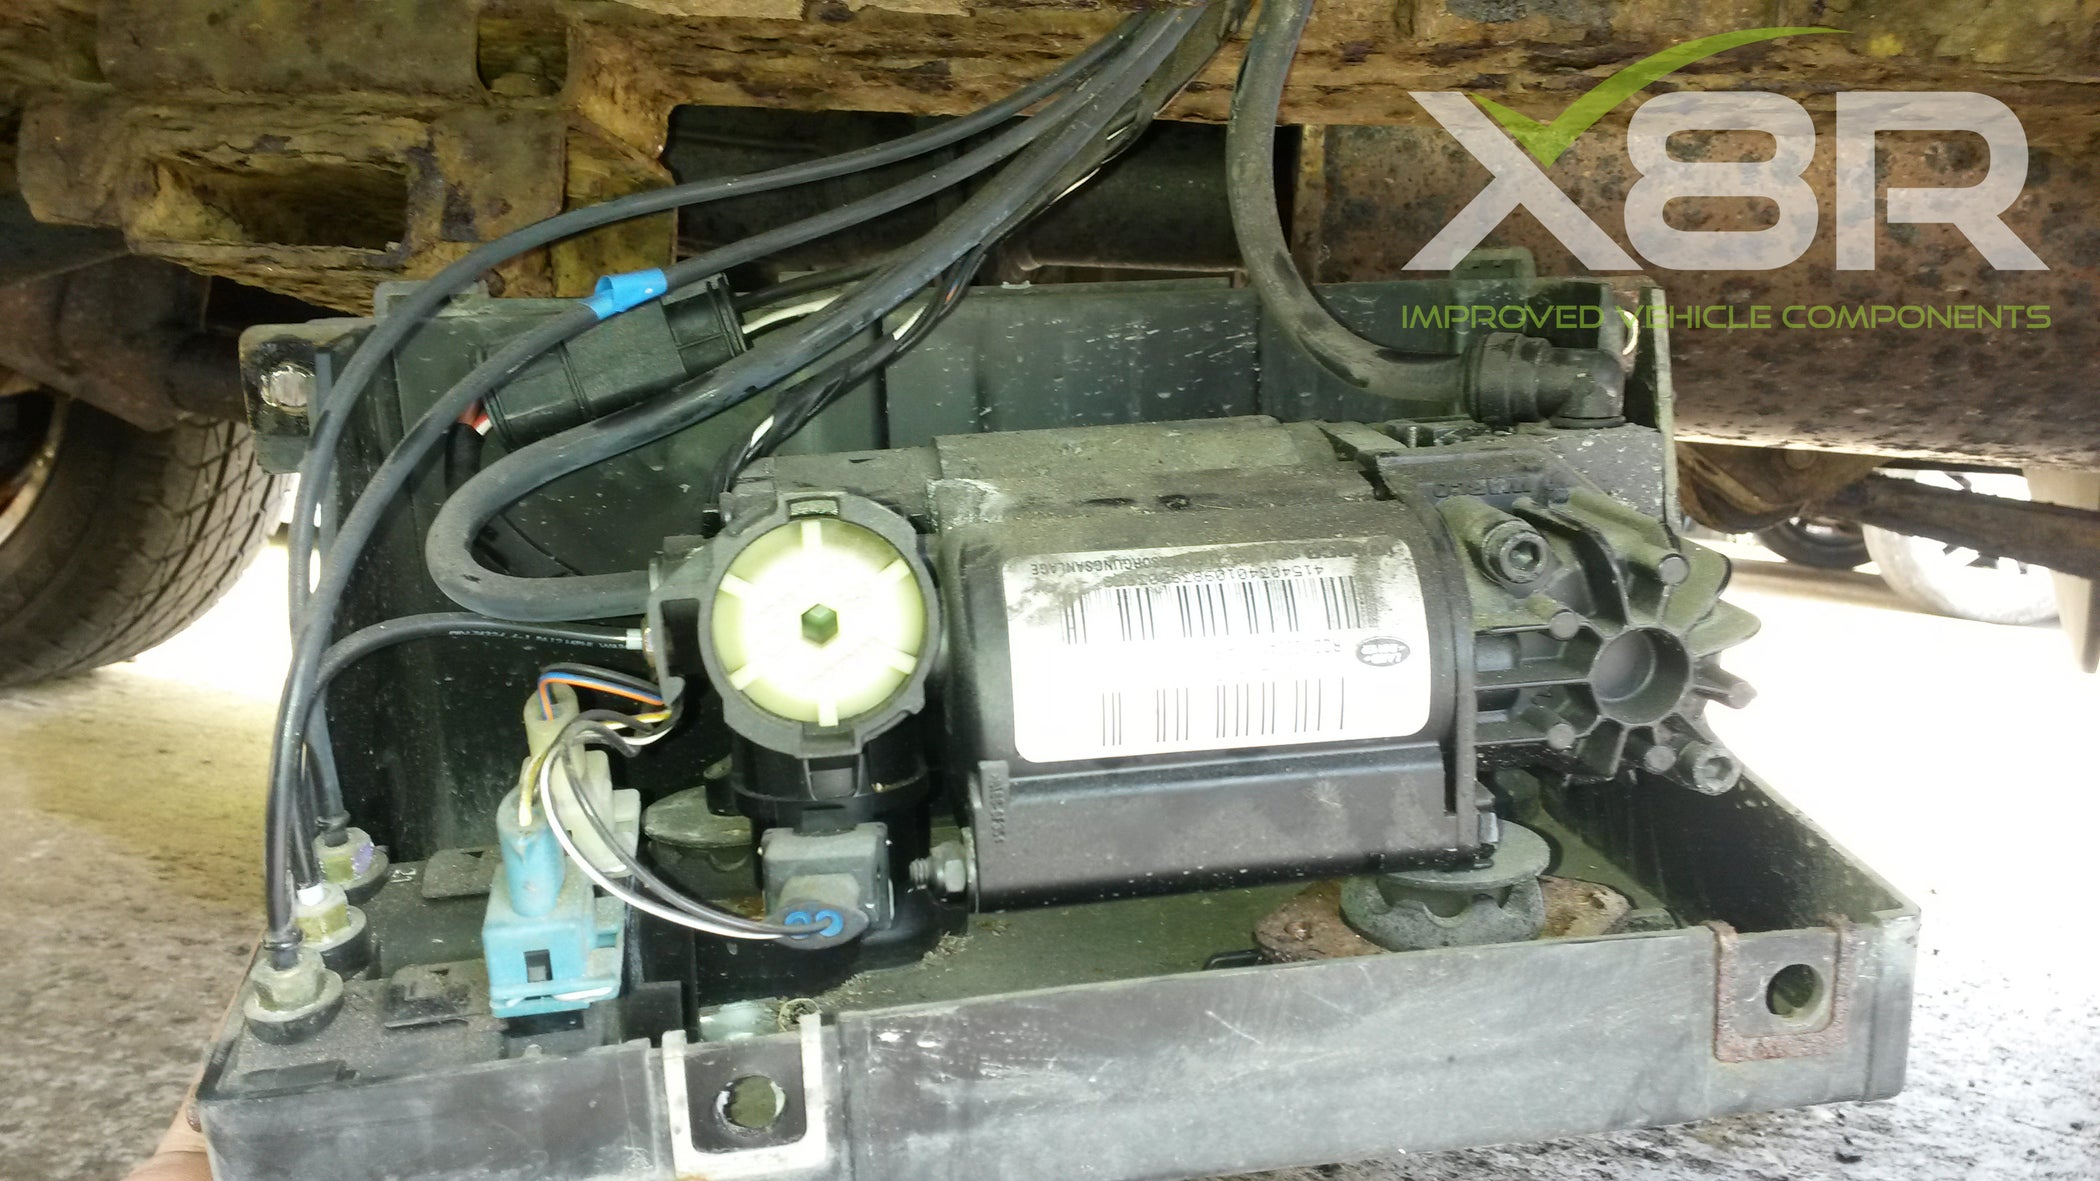 Land Rover Discovery 2 Air Suspension Wabco Compressor Removal 5 Steps Battery Wiring Picture 2003